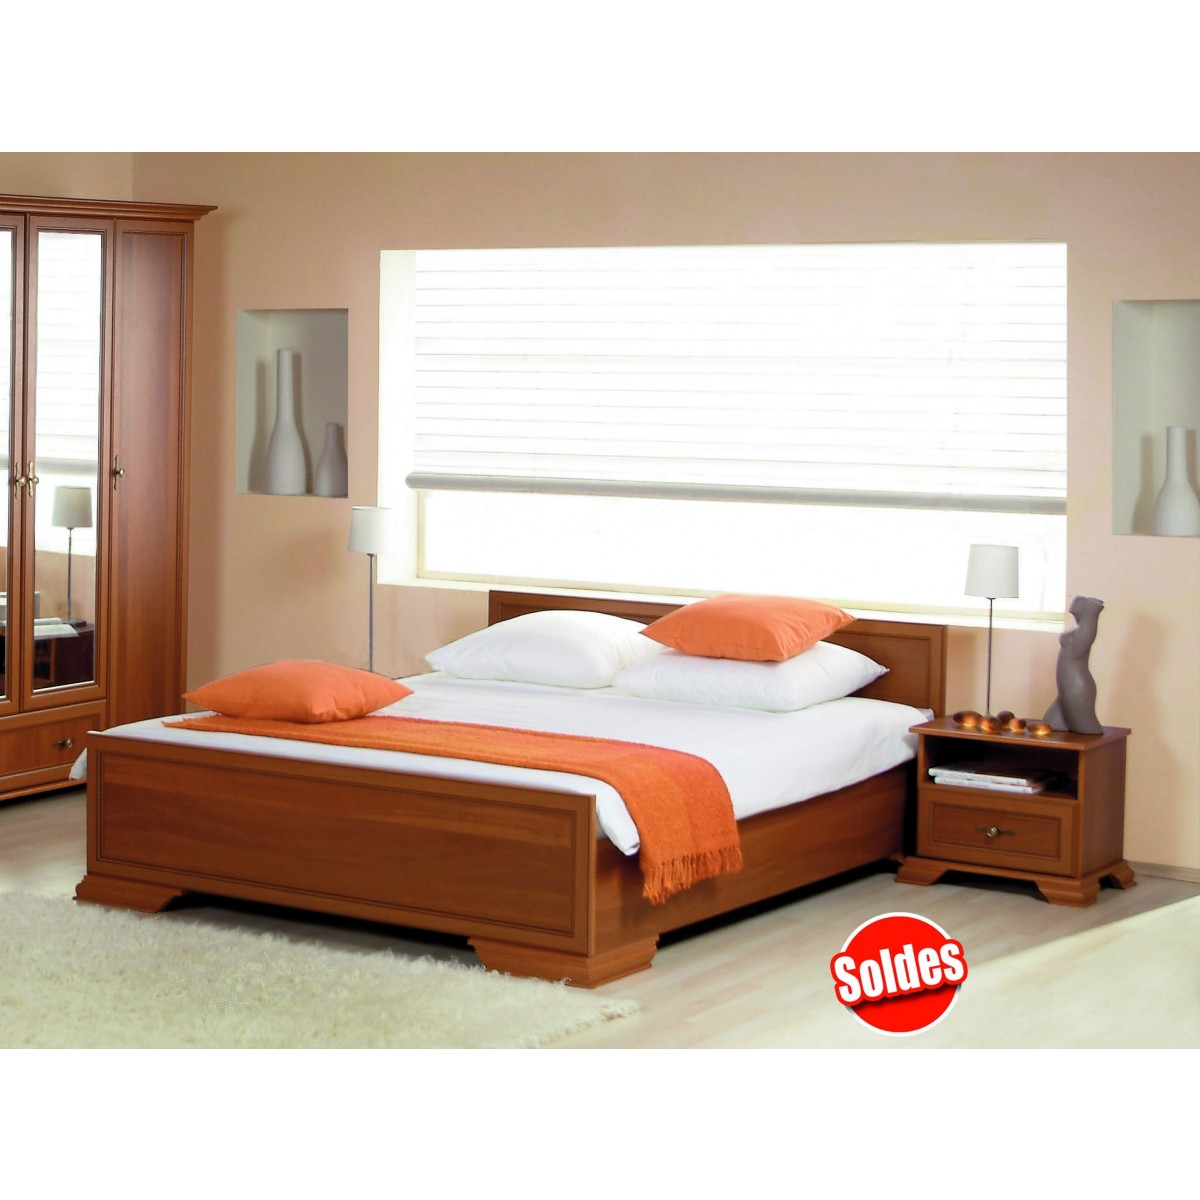 Bedroom Bed-KLAUDIA + coffers. - Furniture for adult bedroom ...